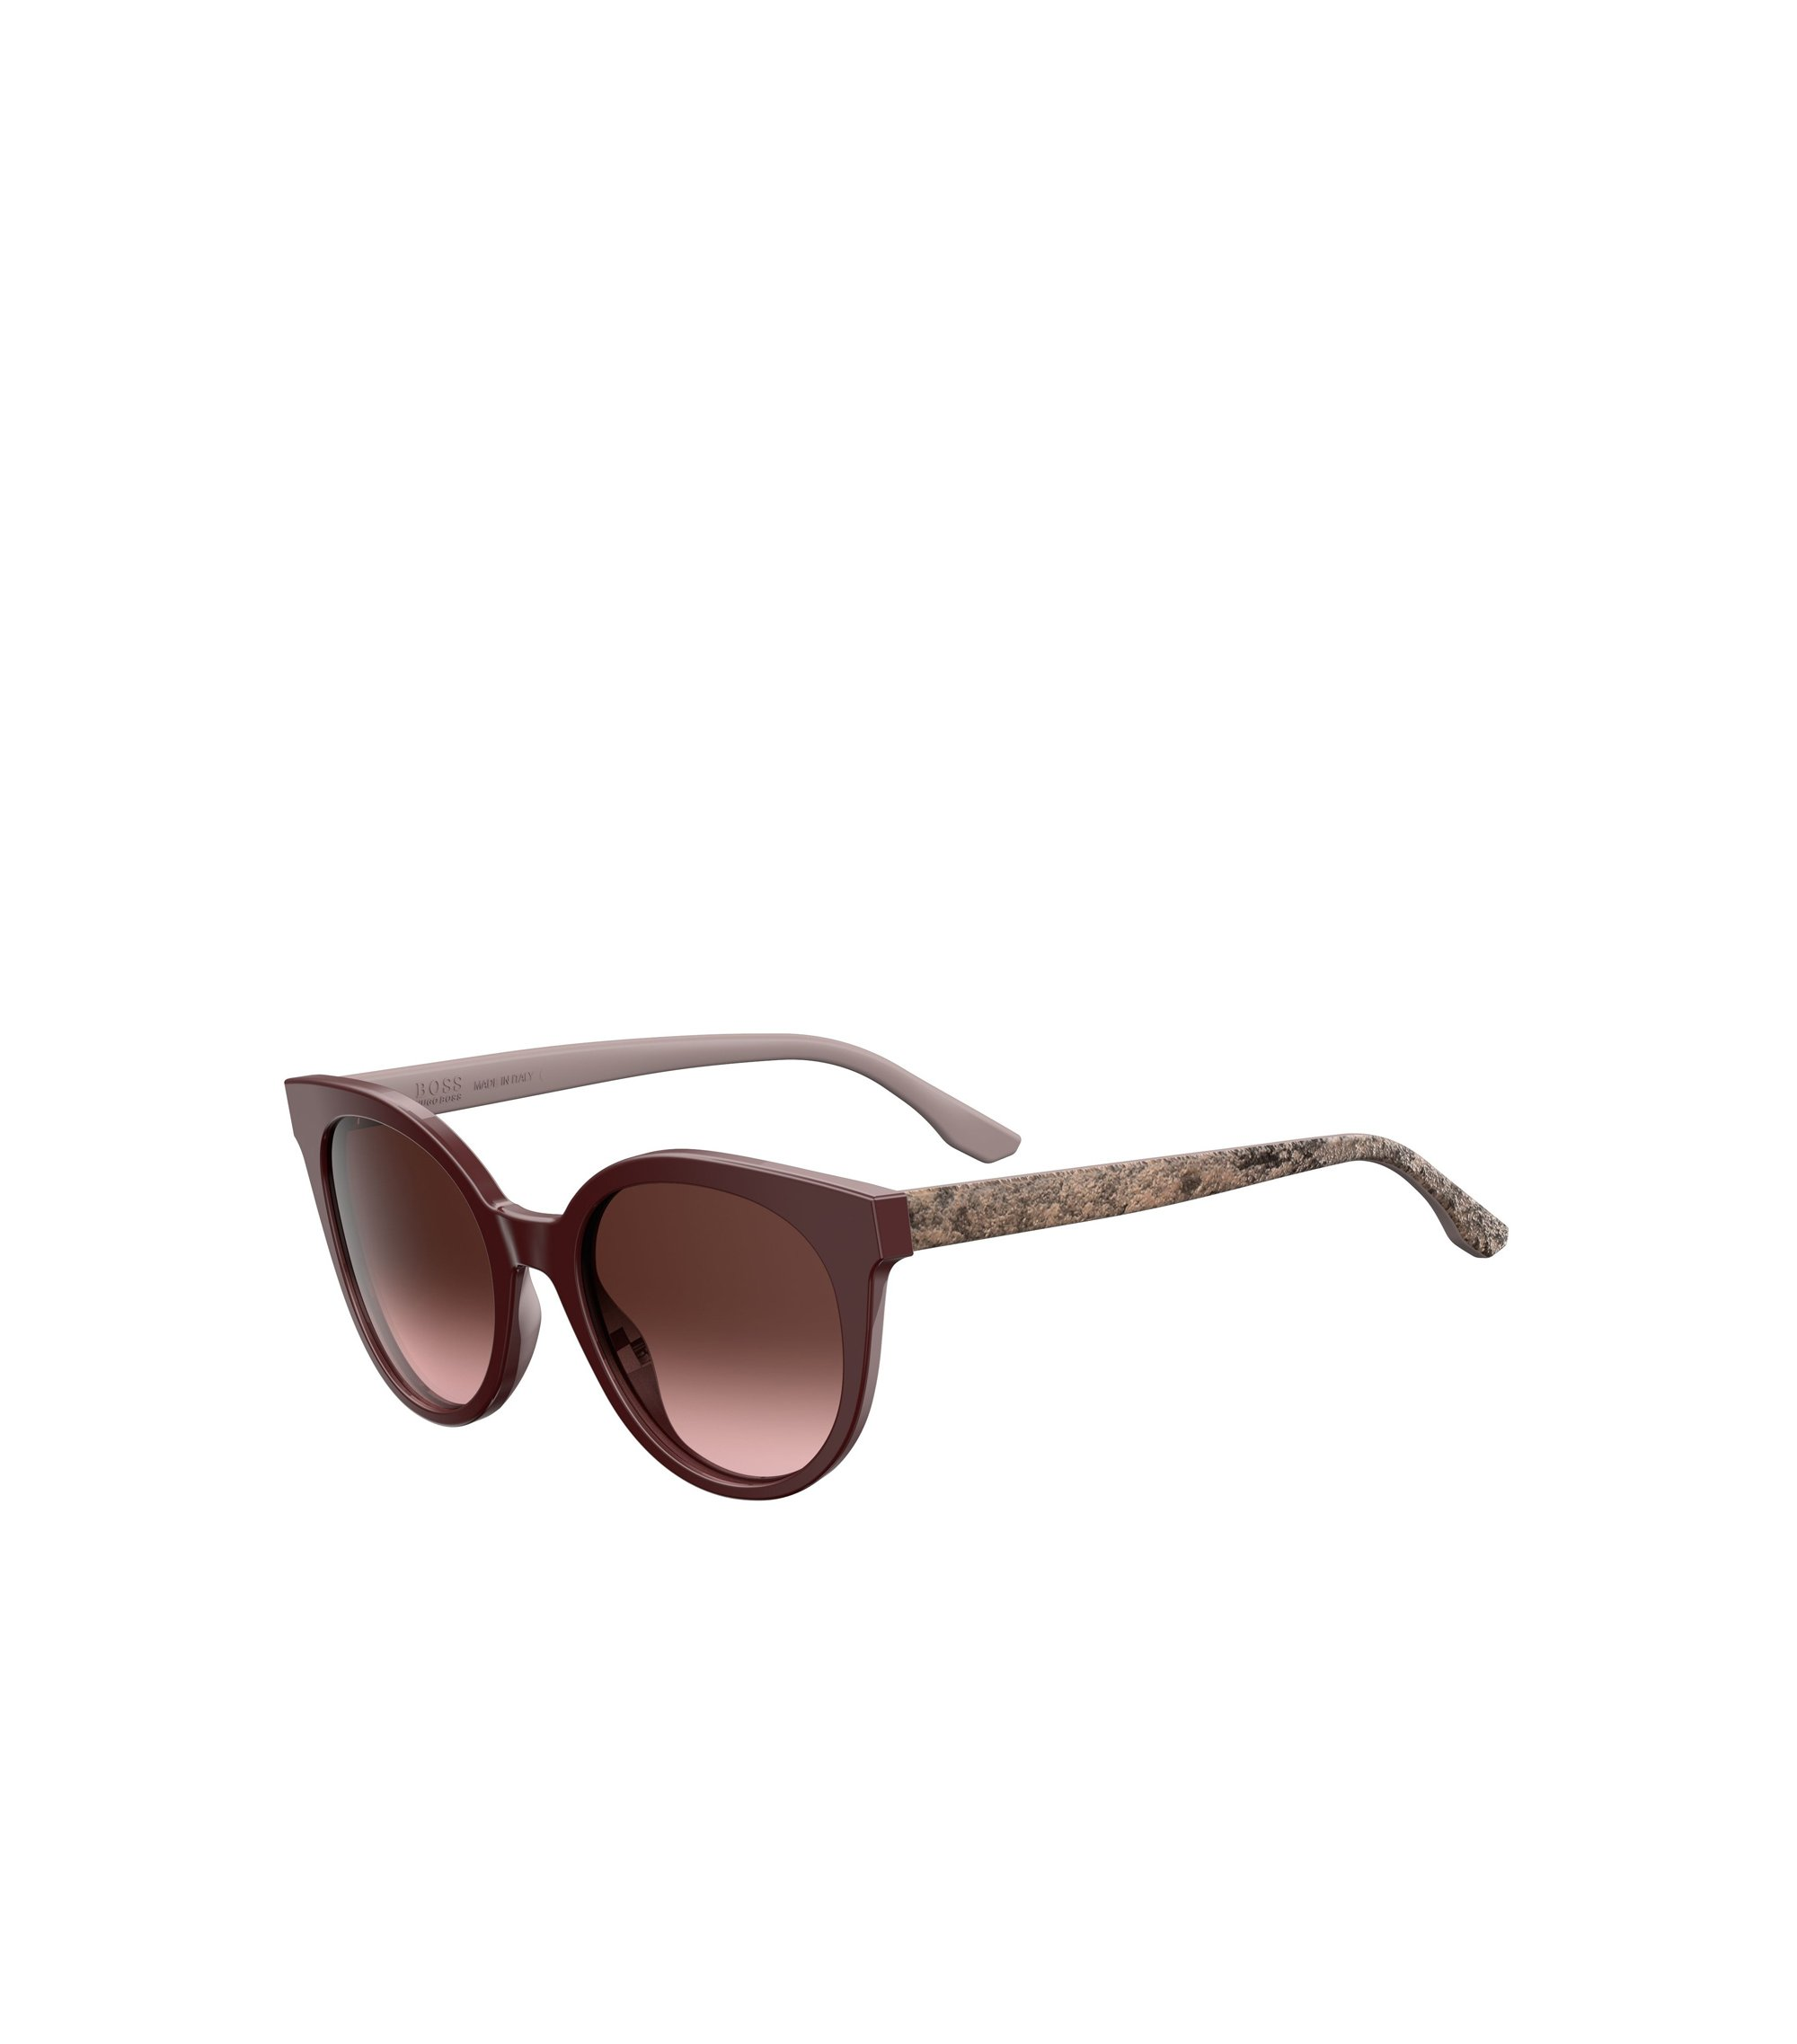 Burgundy Acetate Round Sunglasses | BOSS 0890S, Assorted-Pre-Pack